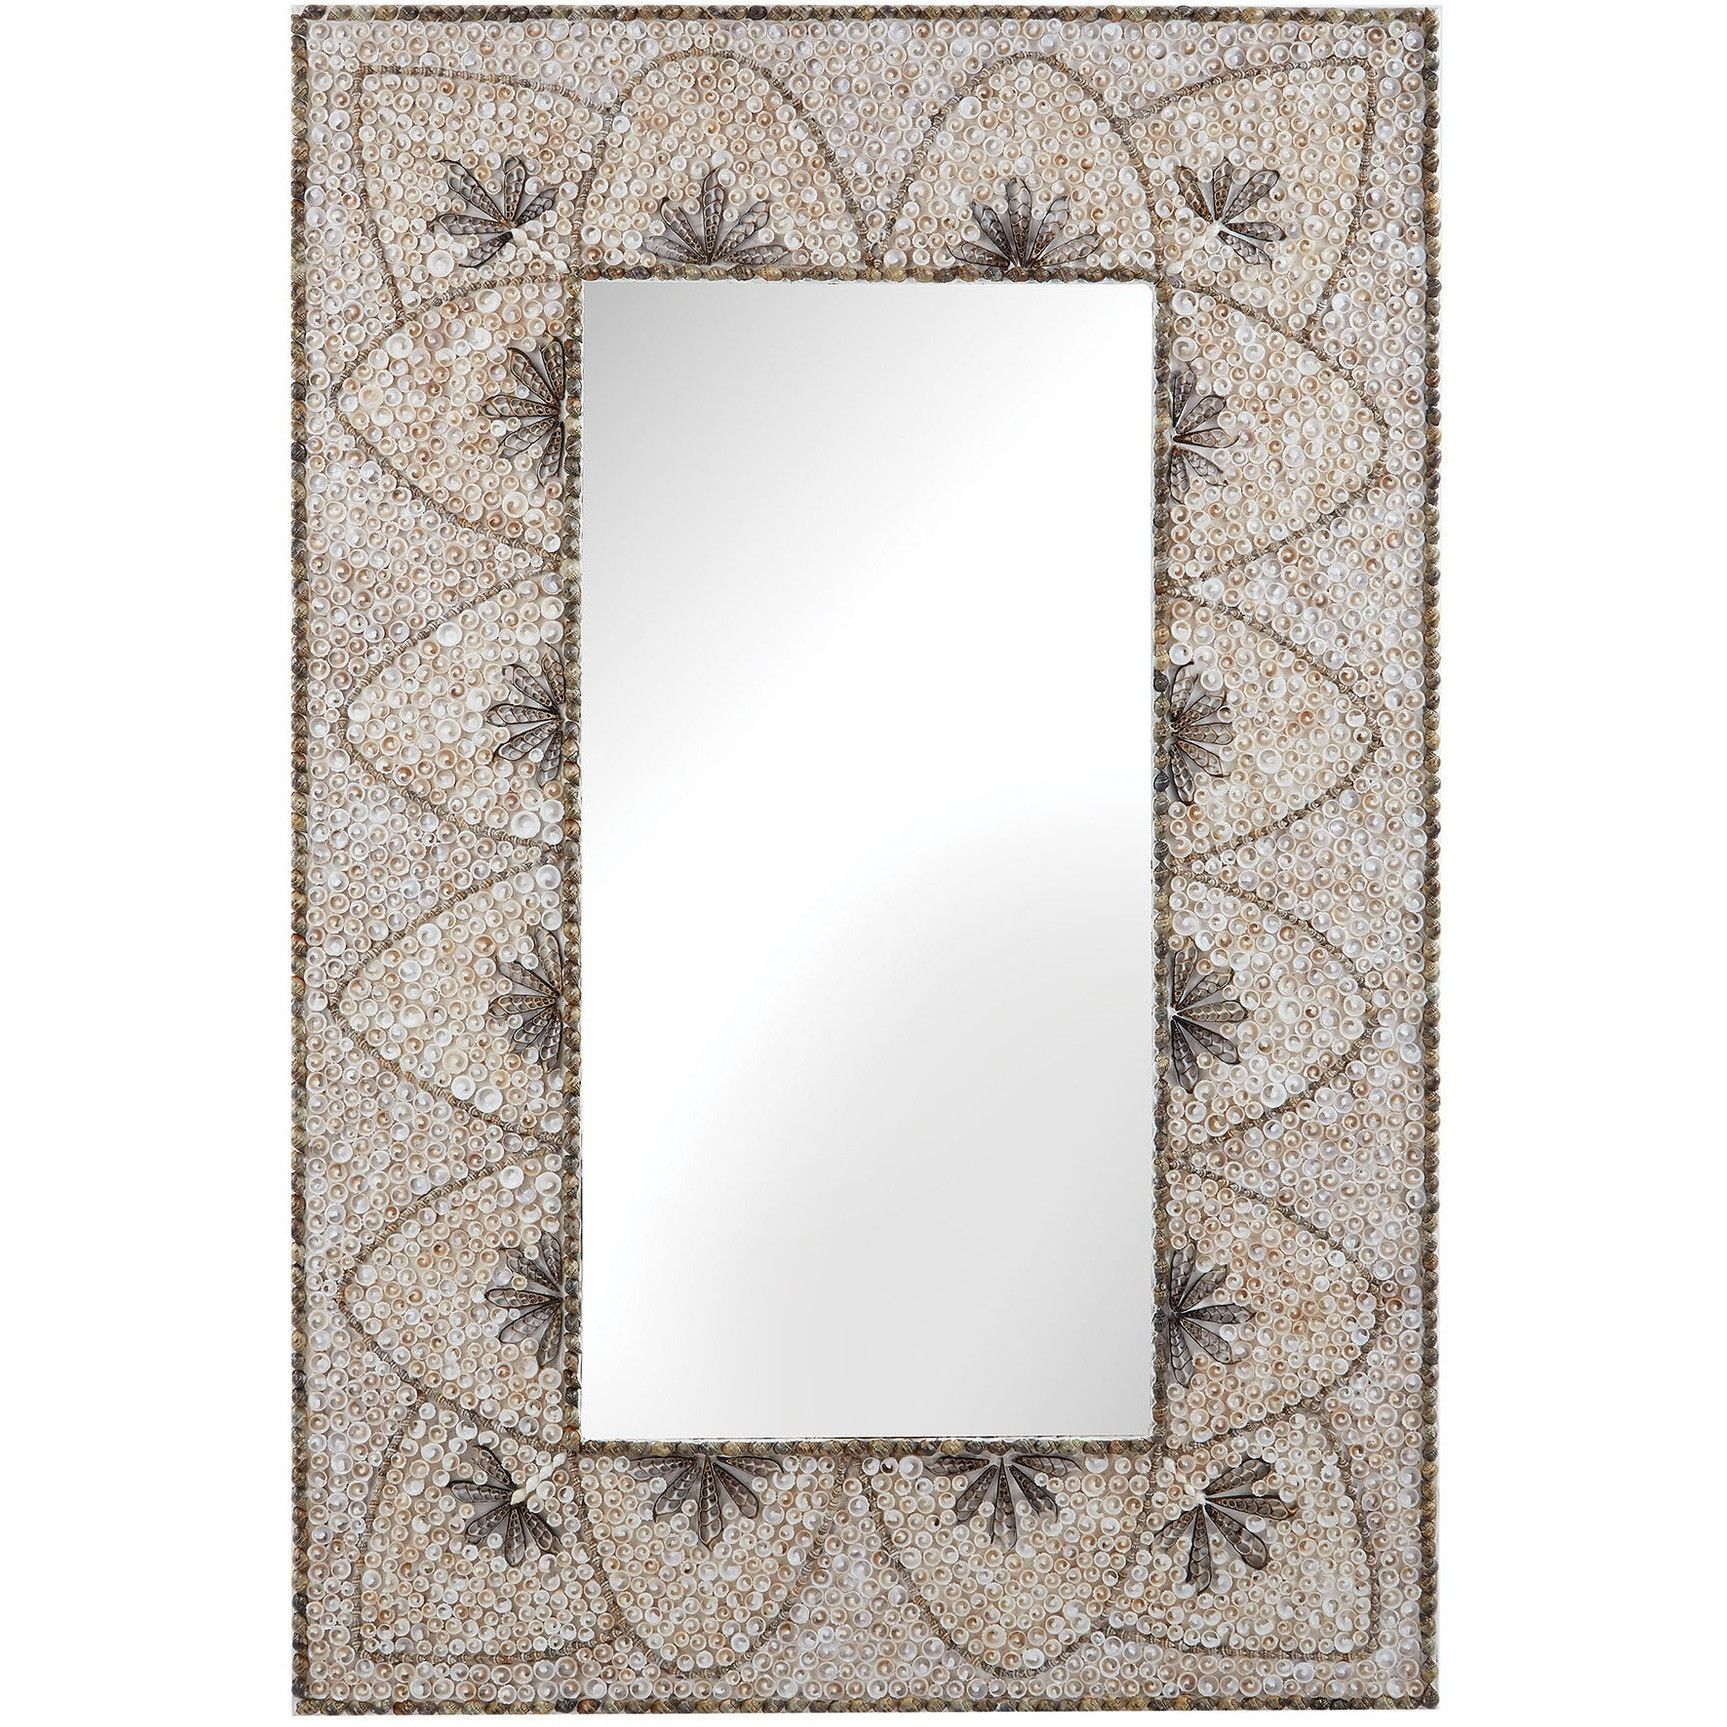 Dimond Home Flower Arc Shell Mirror 163-005